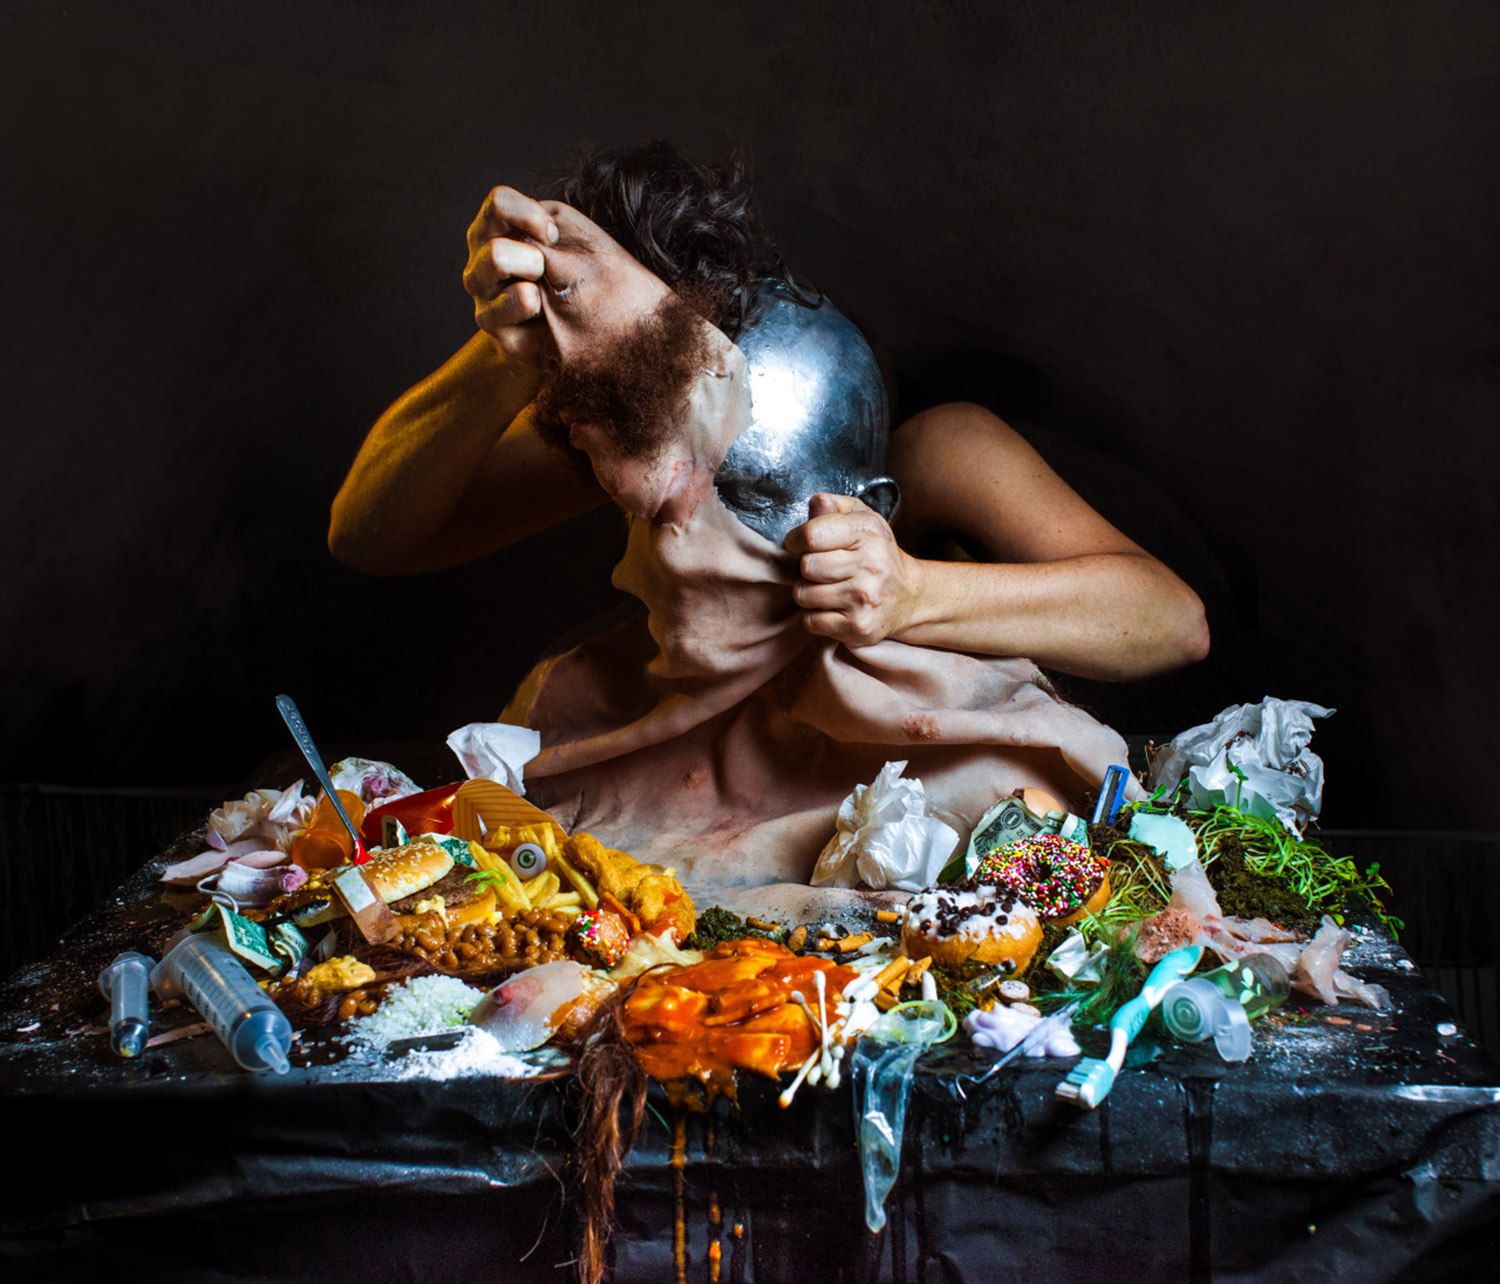 Sarah Sitkin, Djmrex, fleshy sculpture with grotesque food